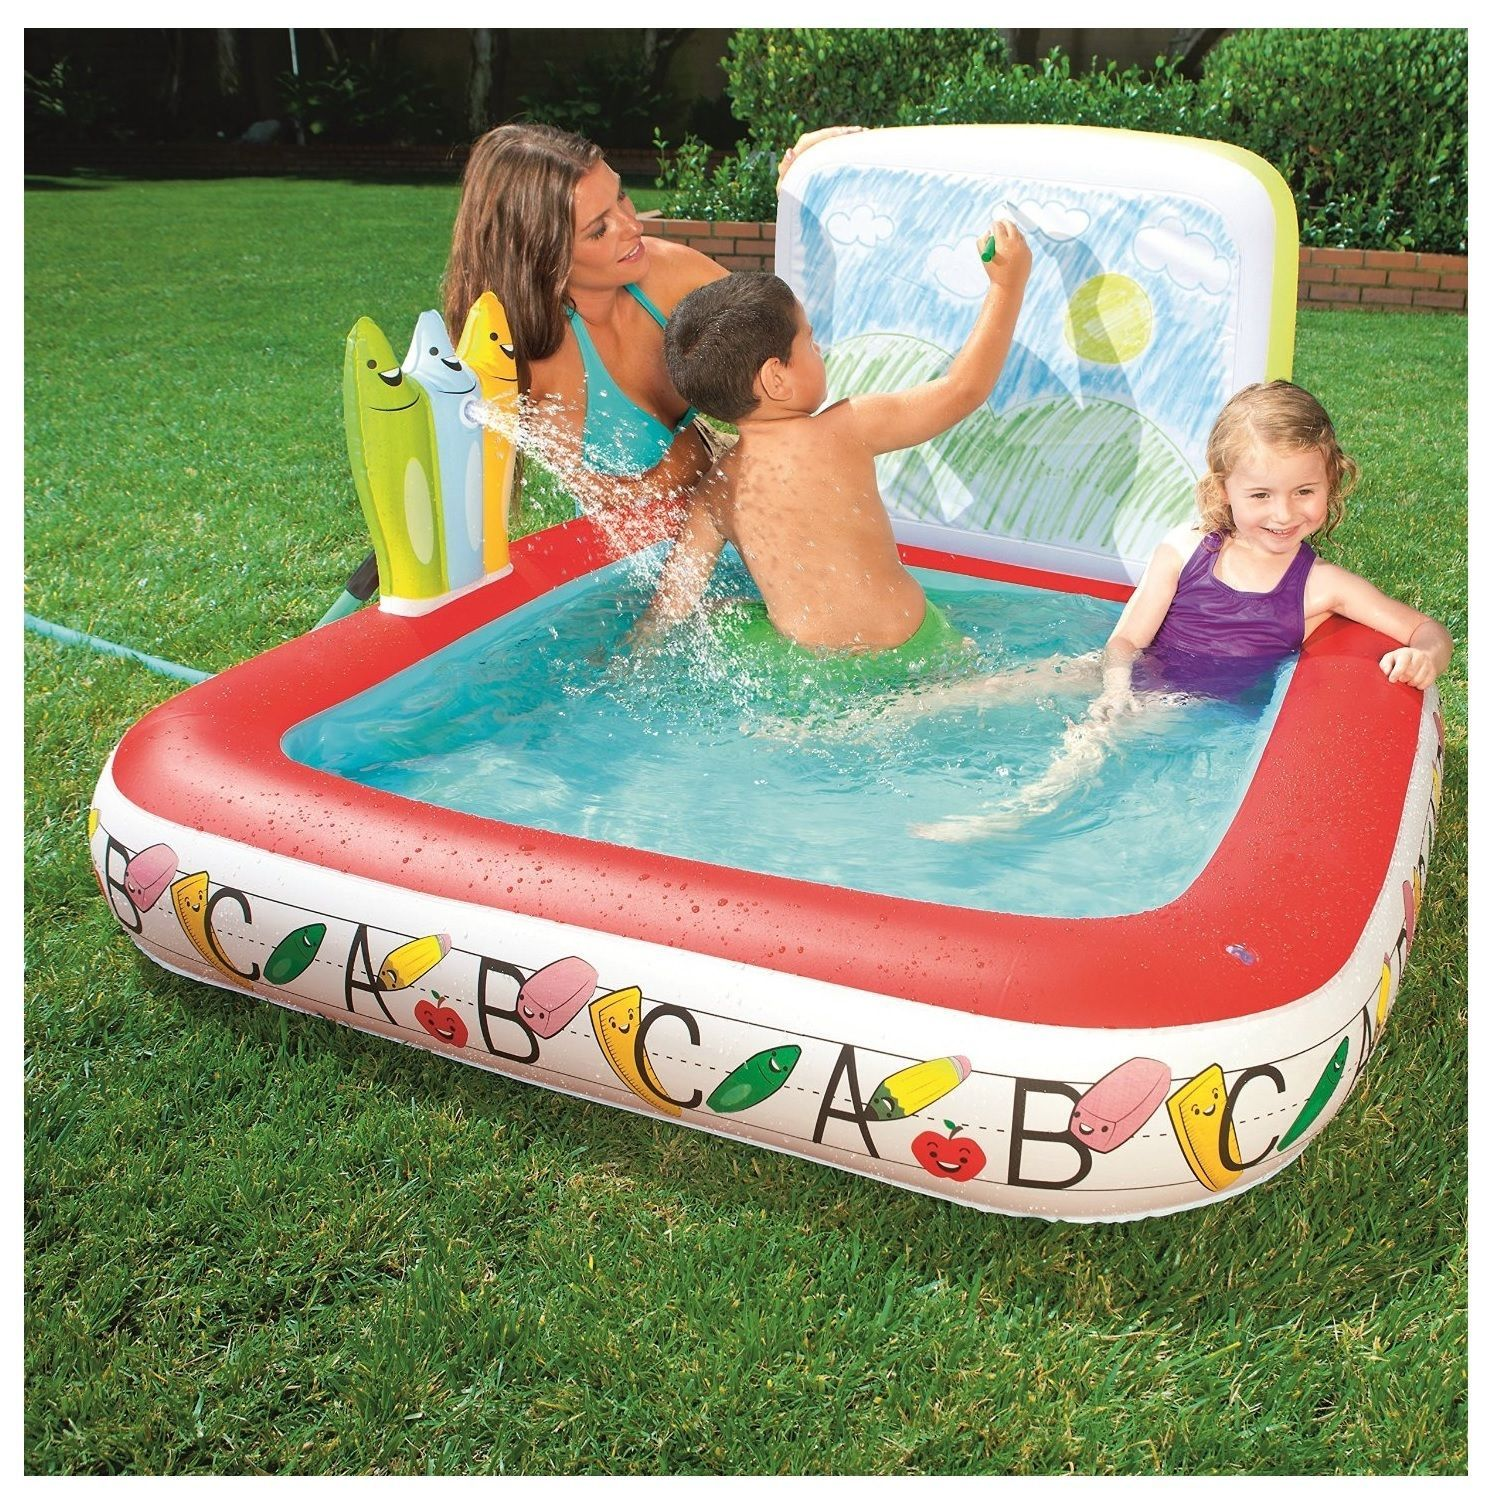 Inflatable pool swimming kids play center toddler backyard ball pit draw board inflatable How to draw swimming pool water